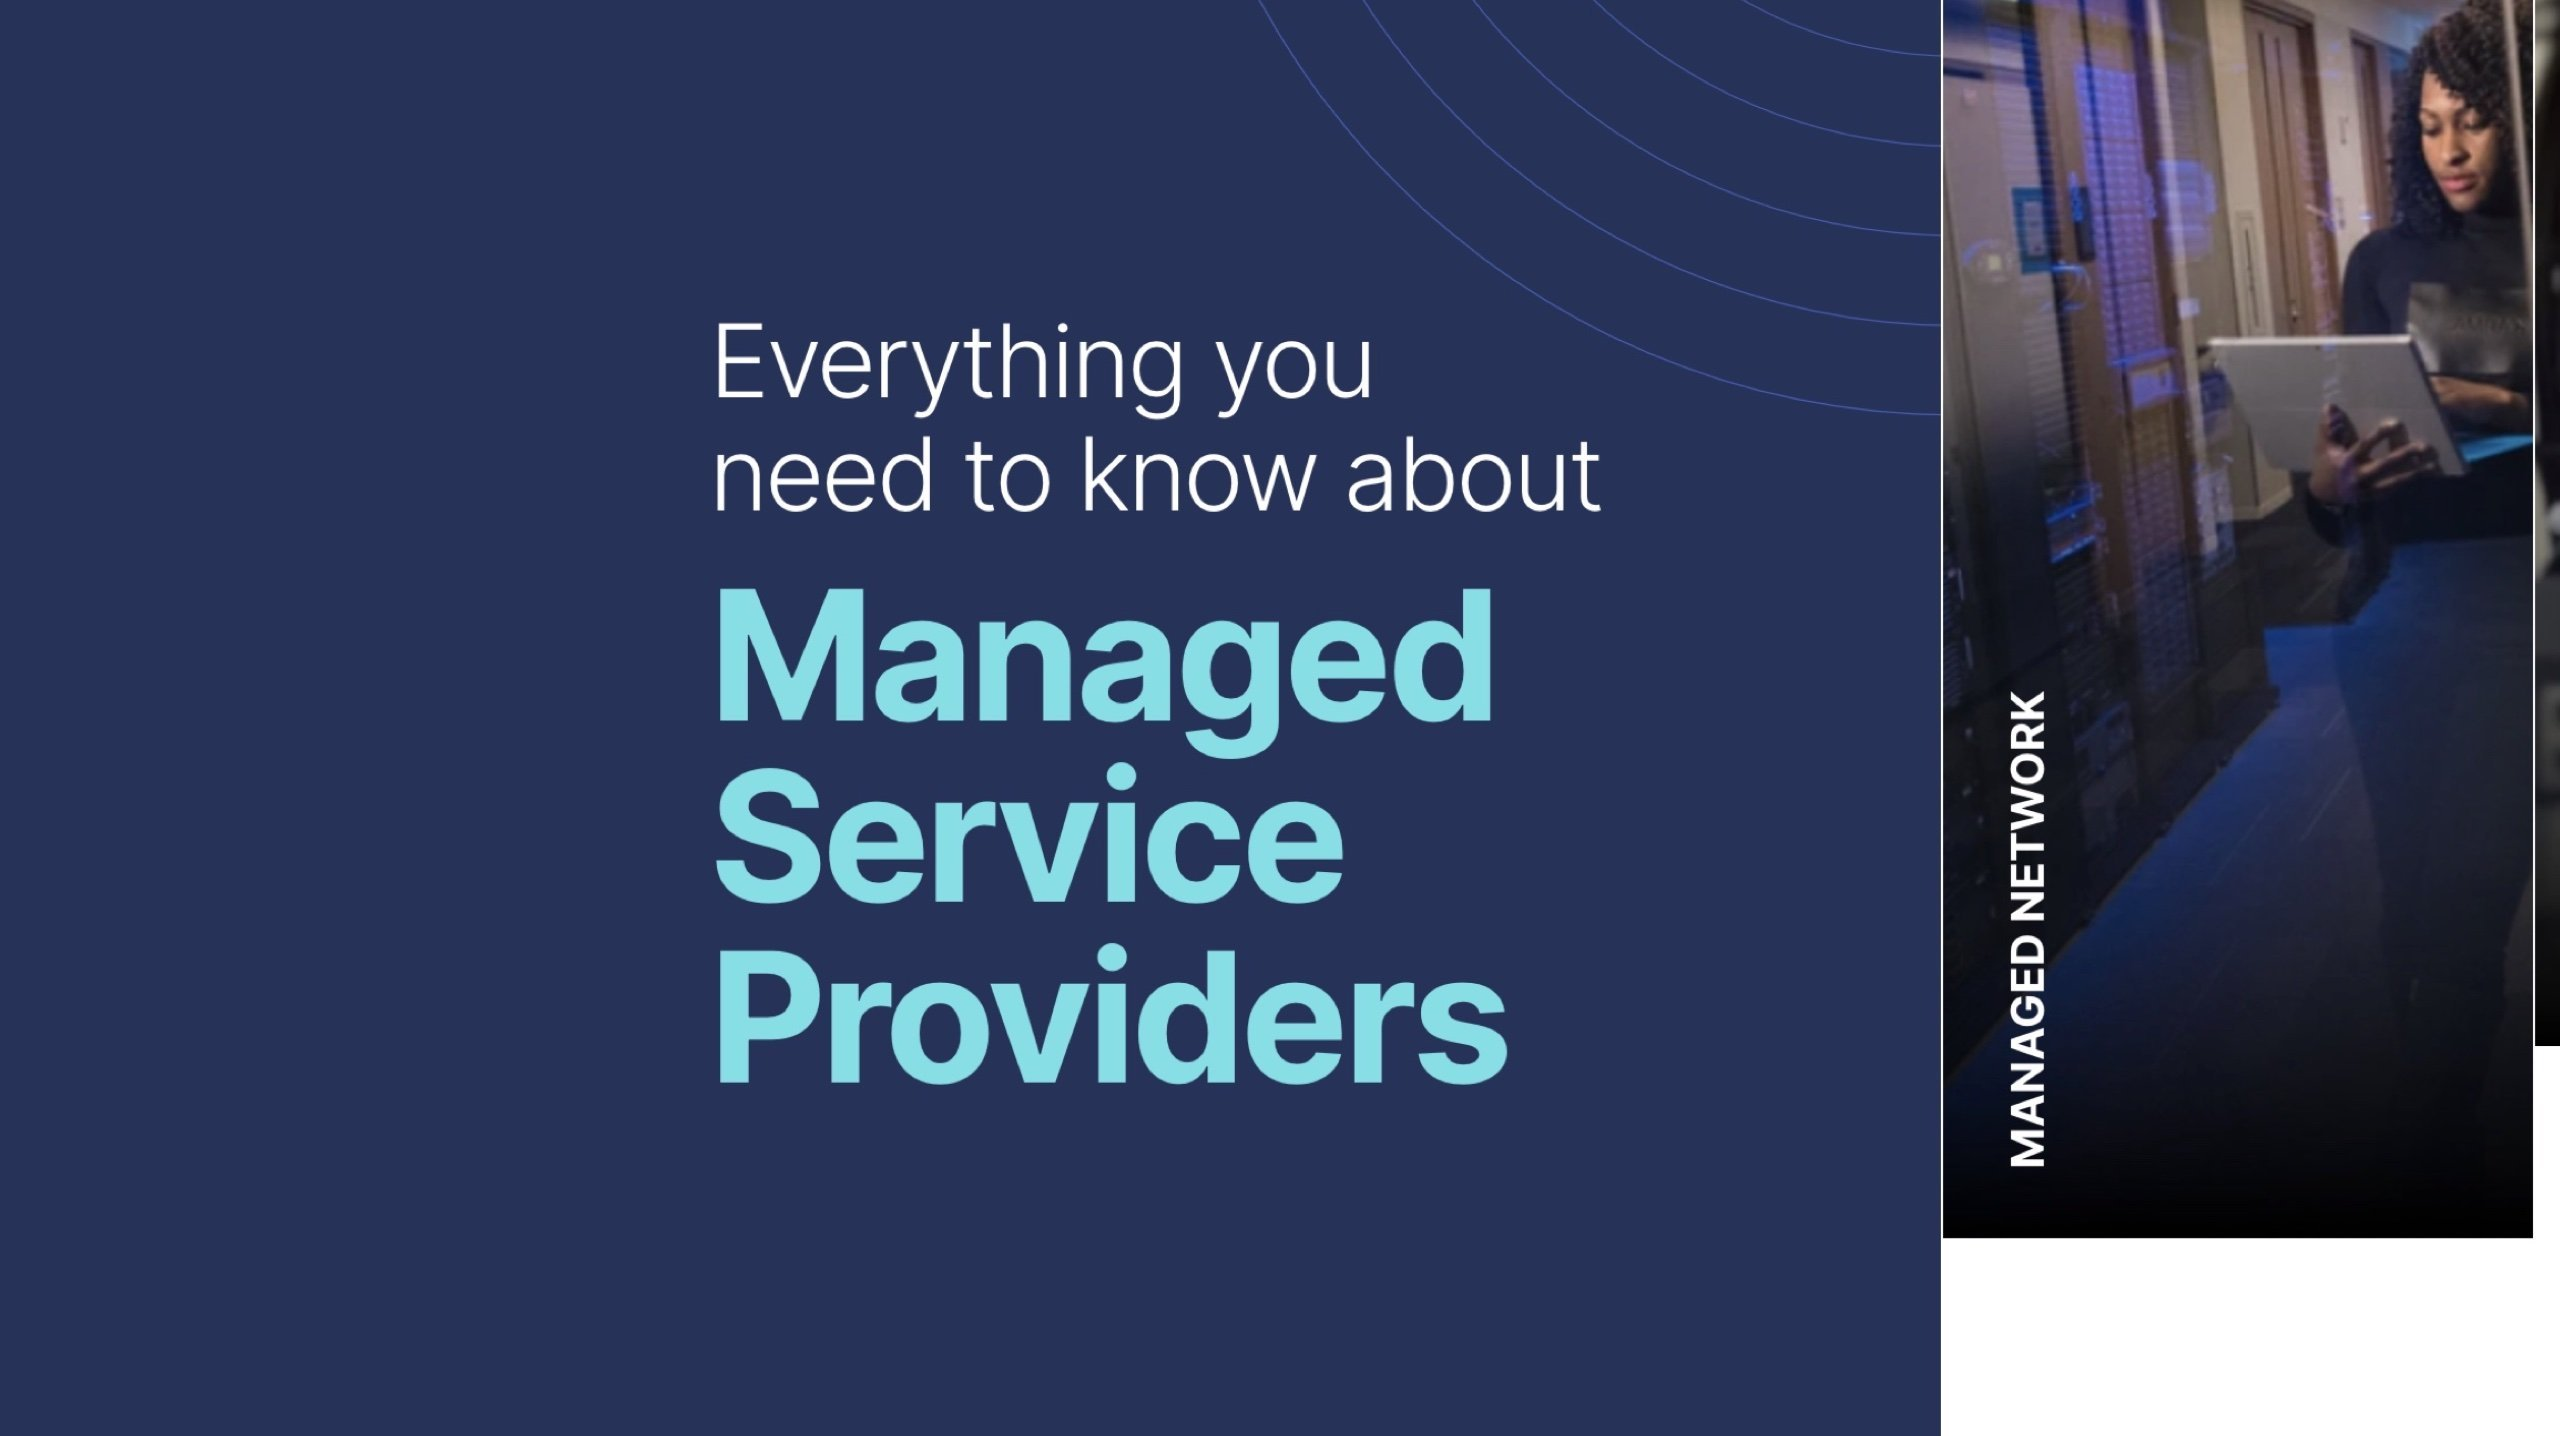 Everything you need to know about Managed Service Providers